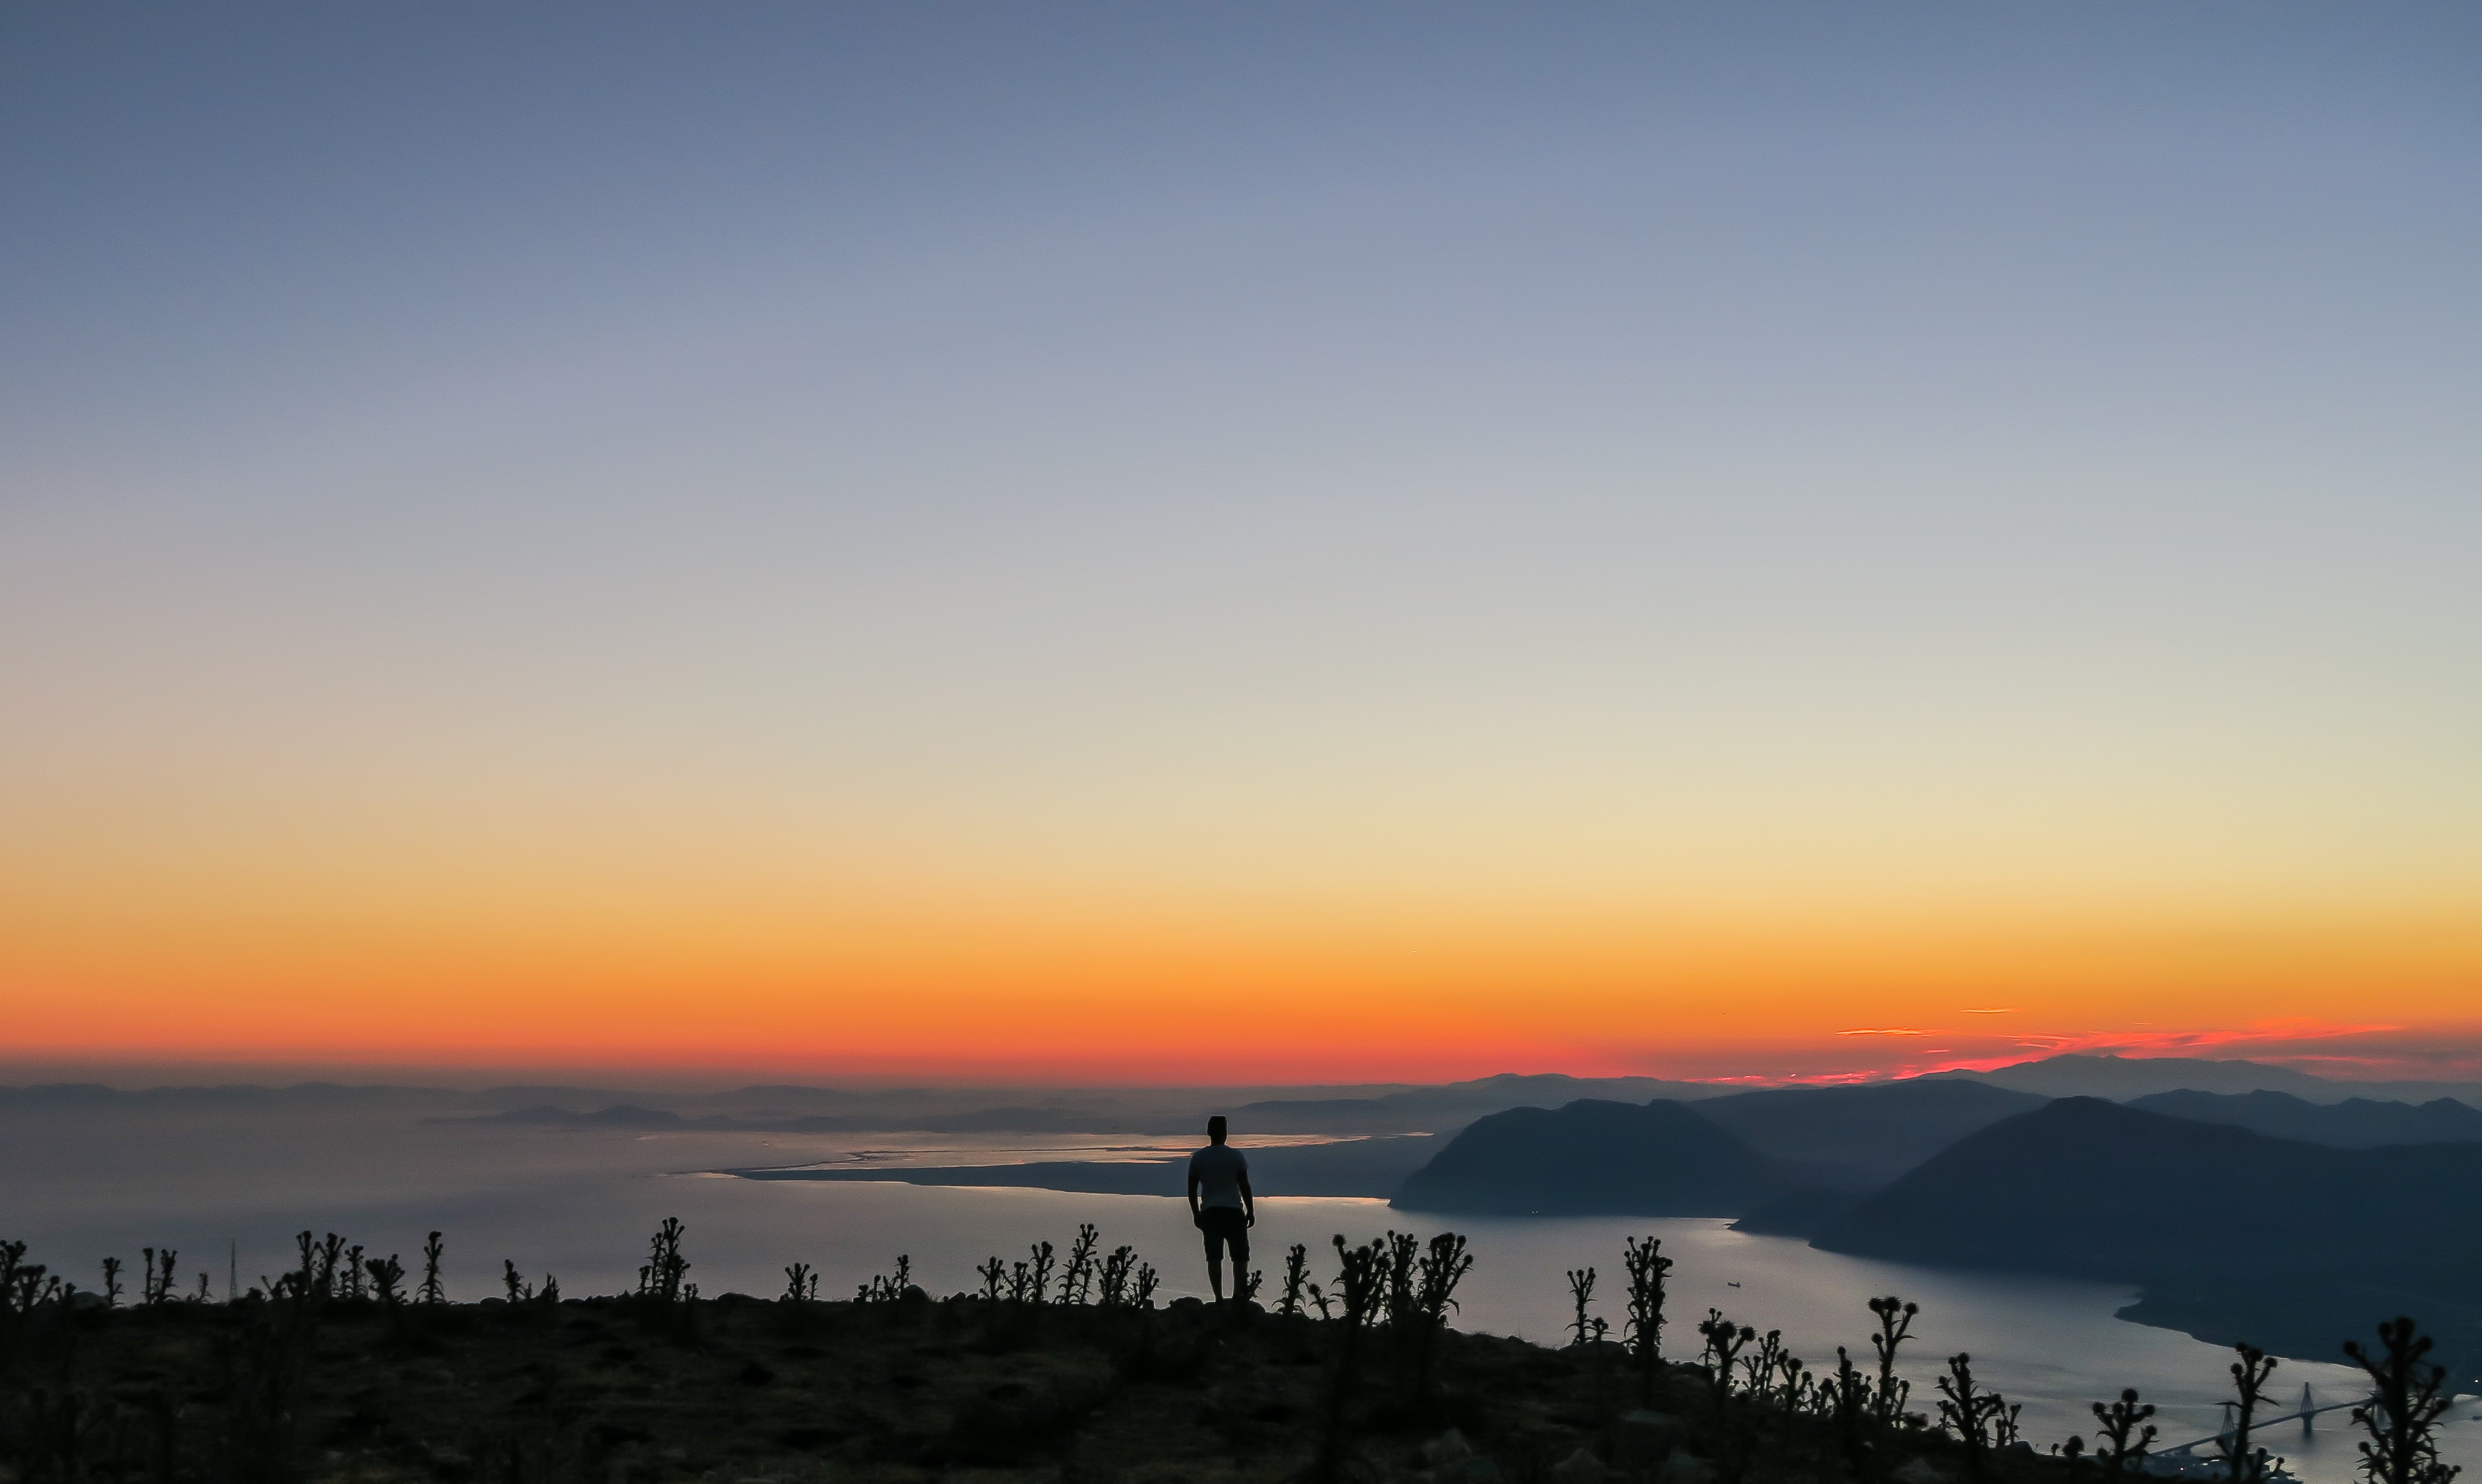 silhouette photo of man standing on mountain